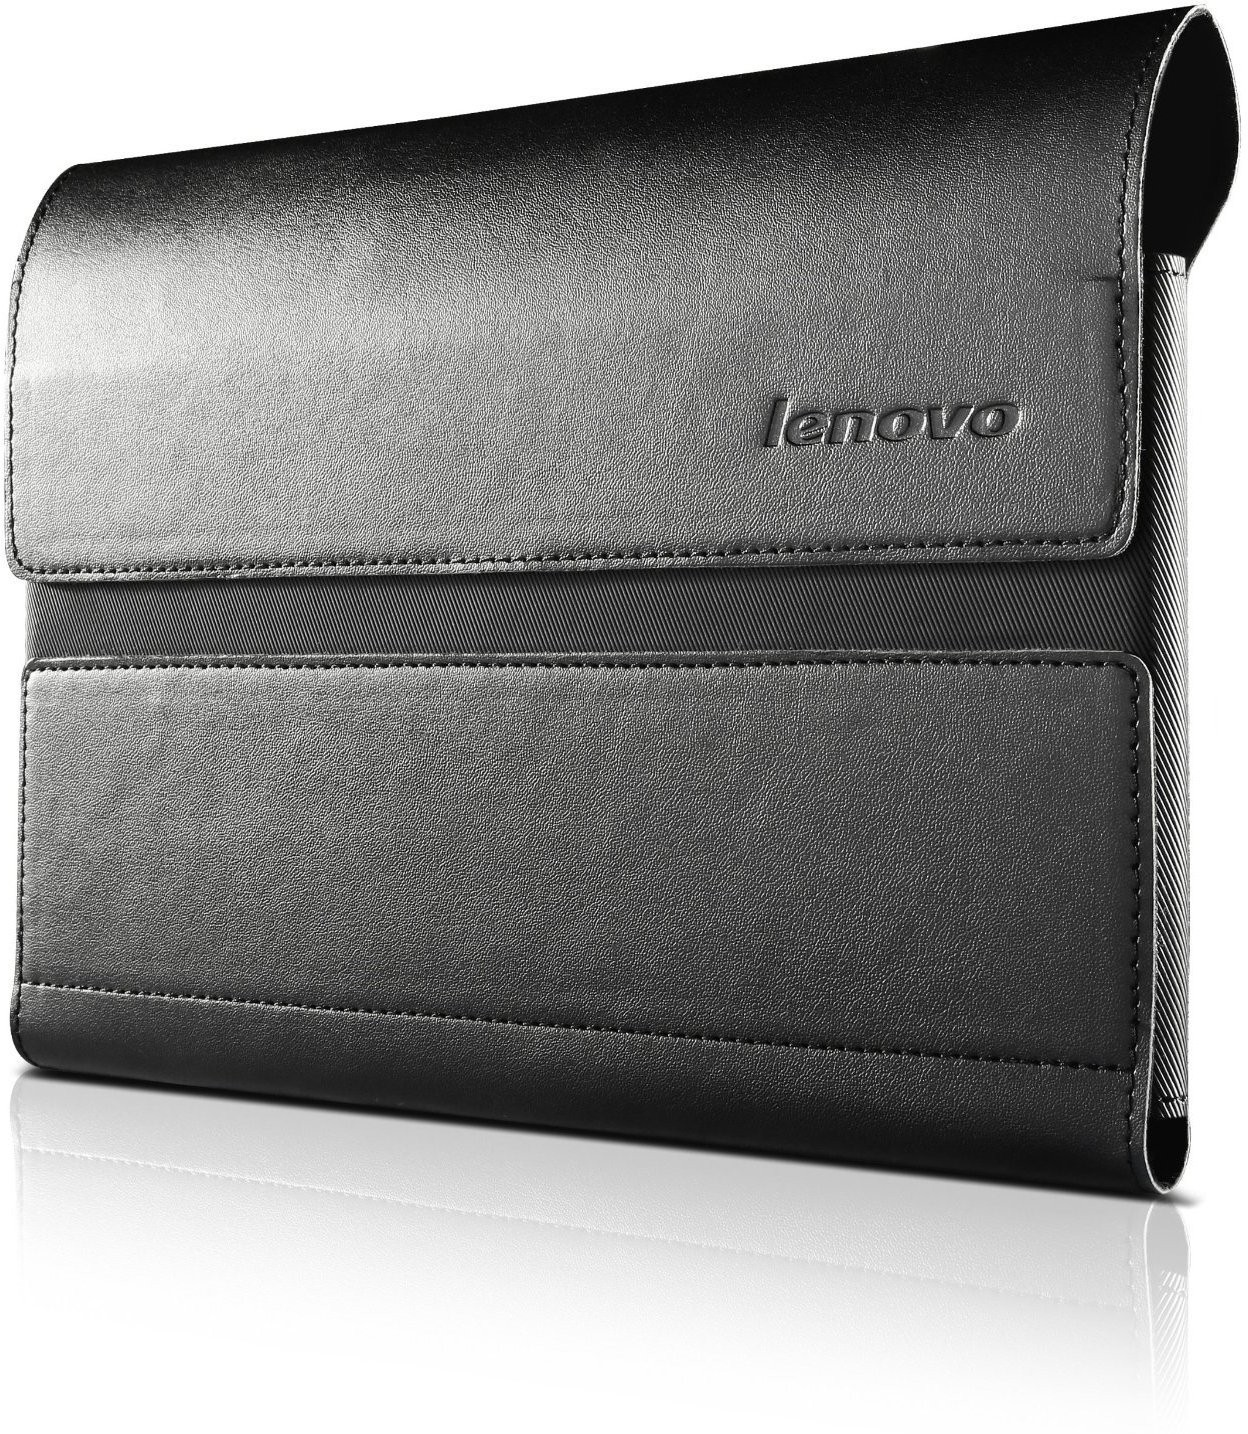 Book Cover Material Yoga : Lenovo book cover for yoga inch tablet